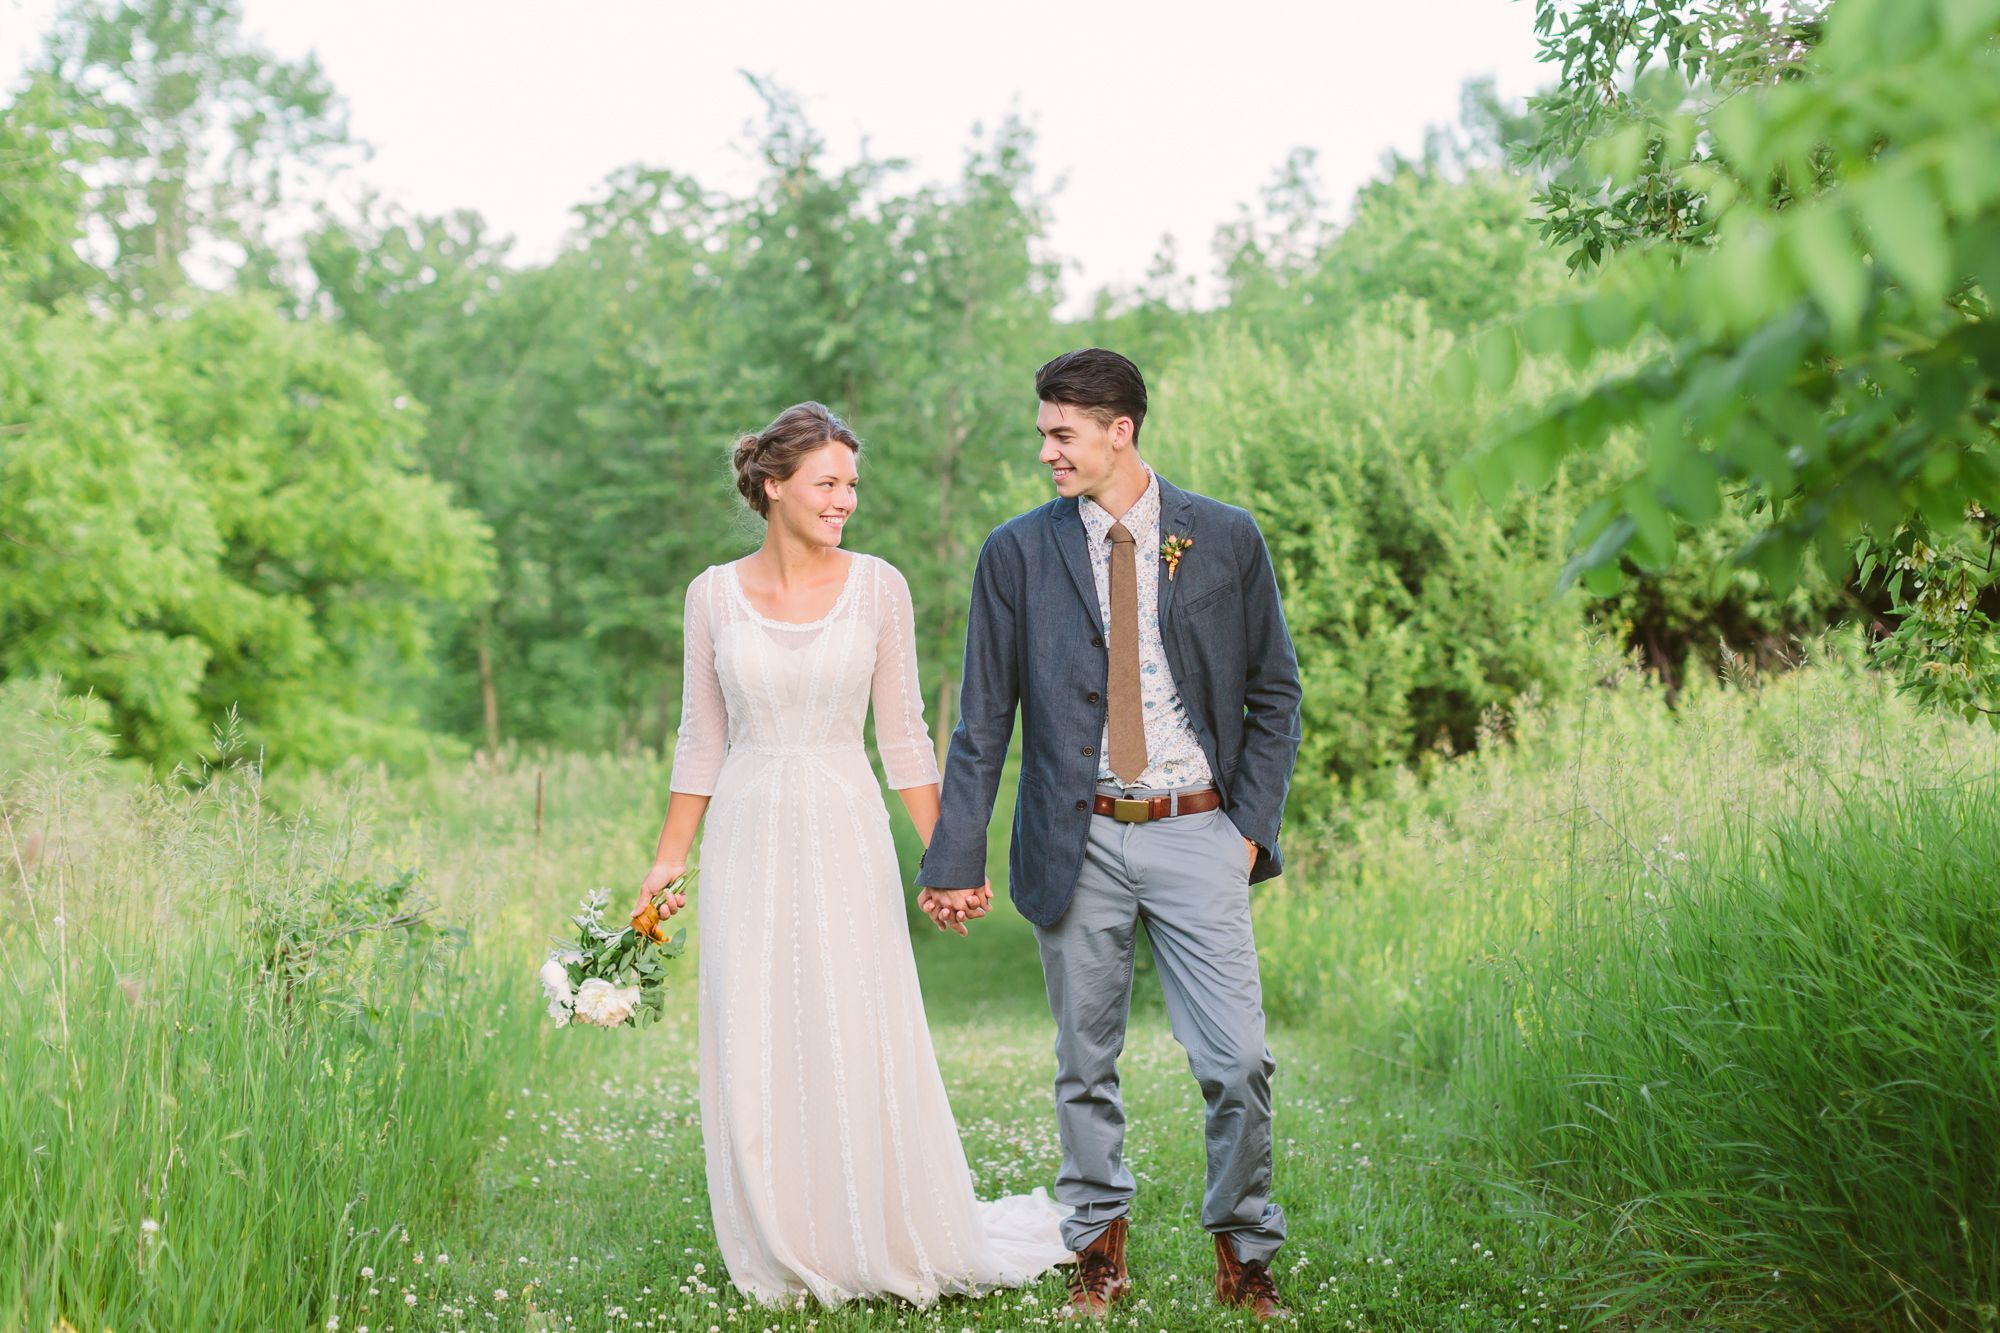 Natural wedding dresses  A Natural Wedding with a Vintage Twist at Givens Farm in Hortonville